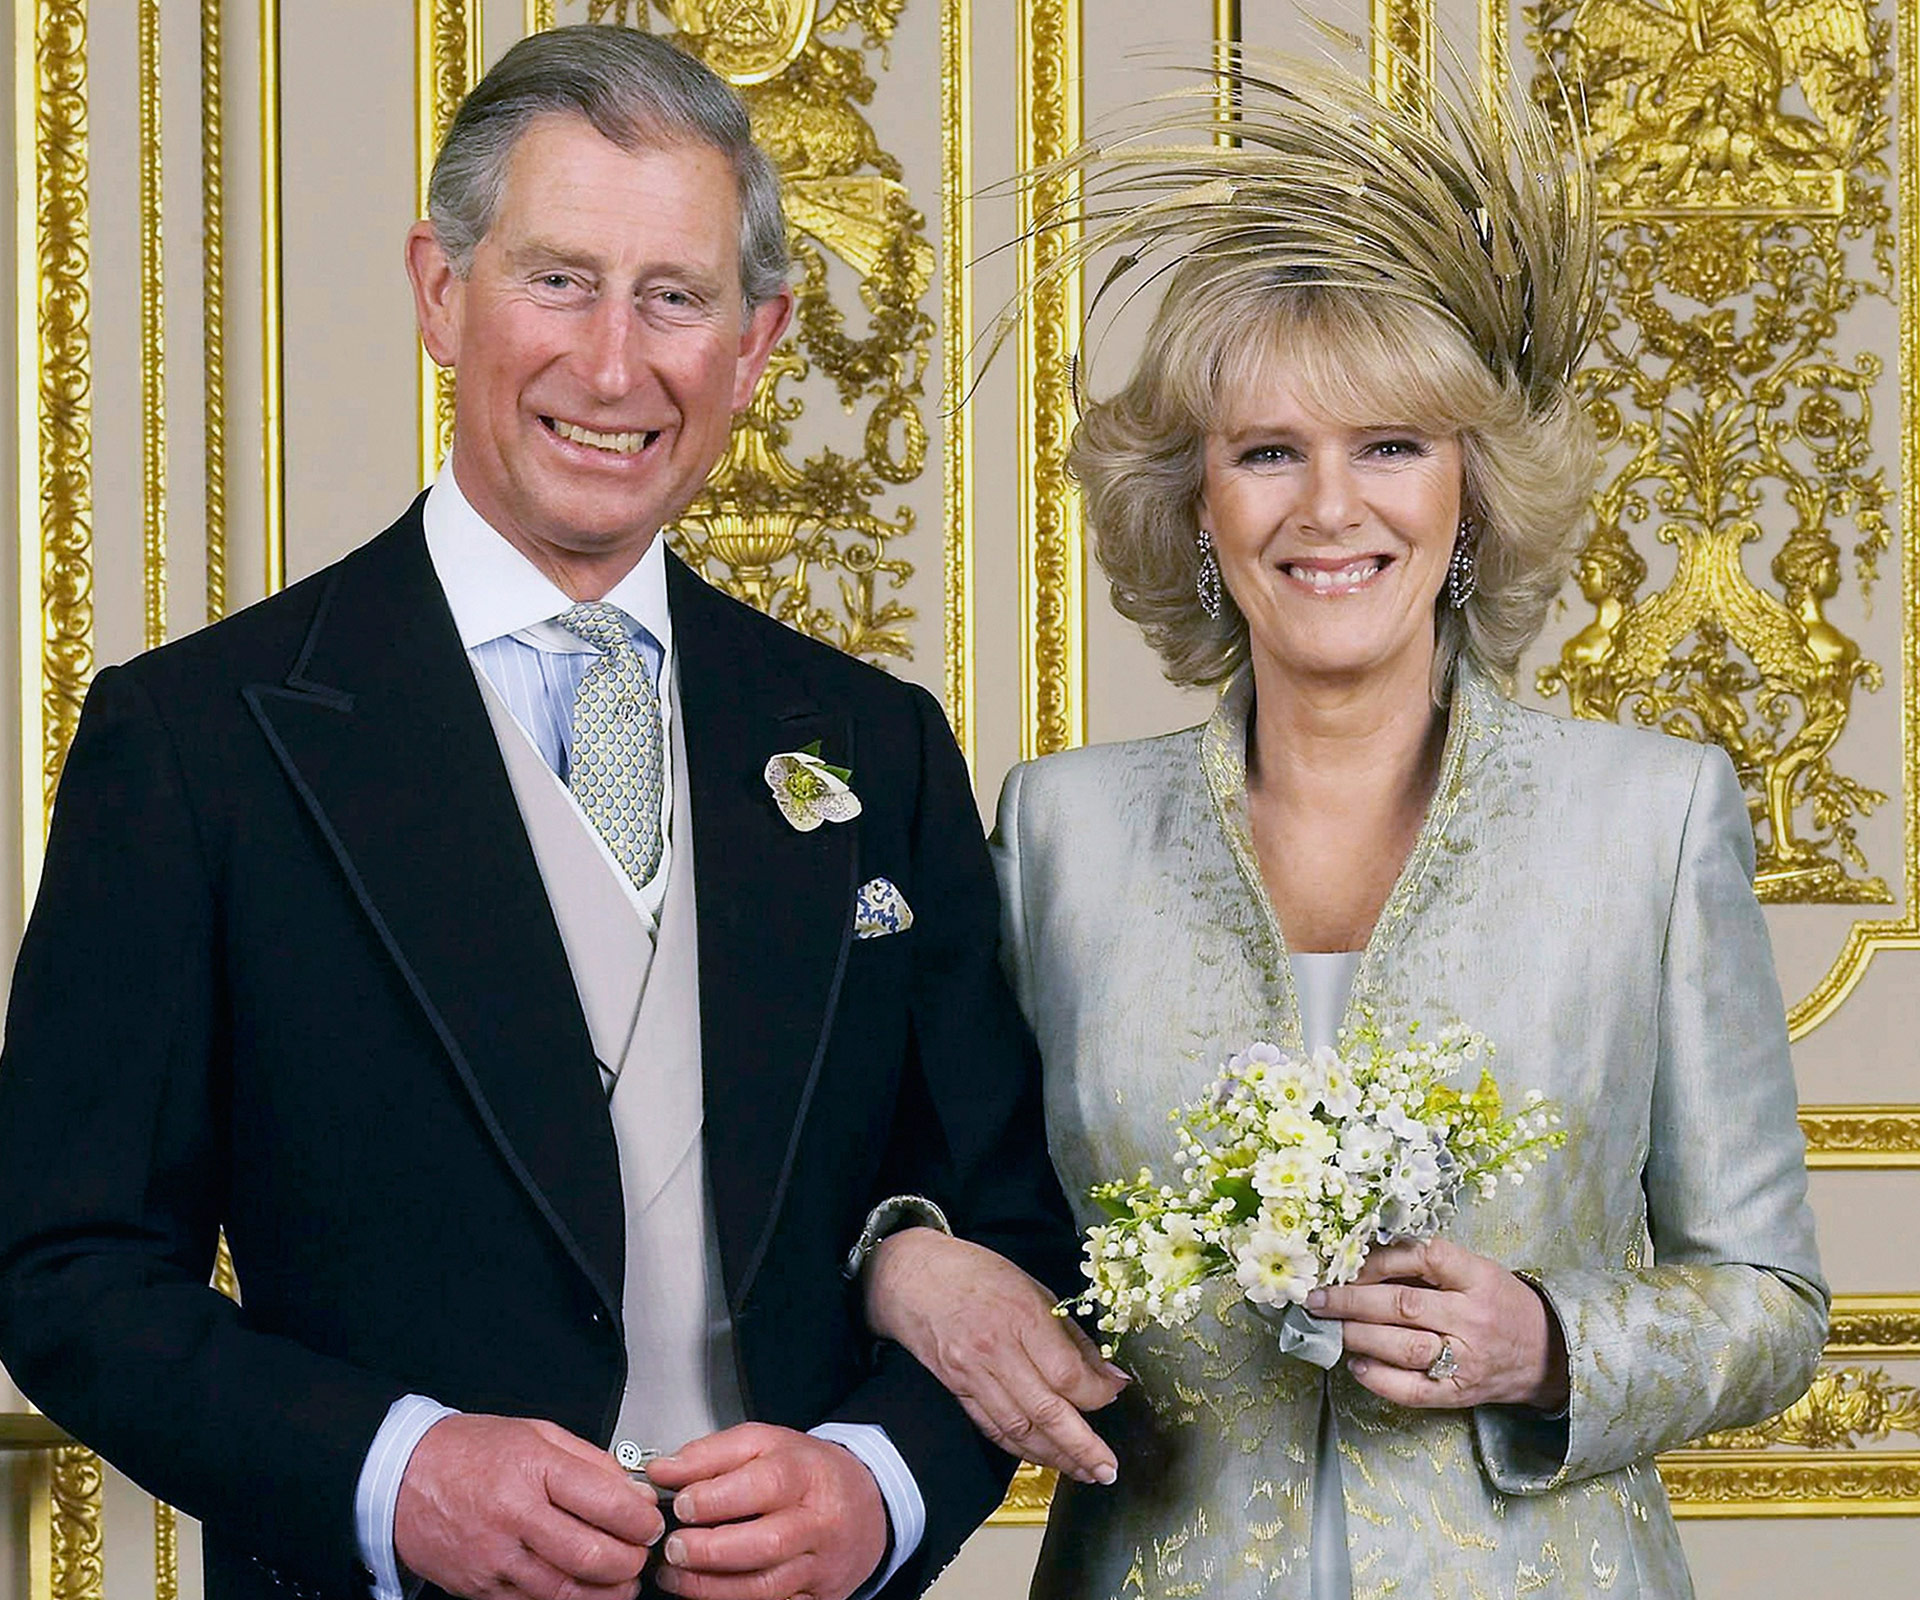 Princess Diana Threatened To Kill Camilla Parker Bowles Claims New Book